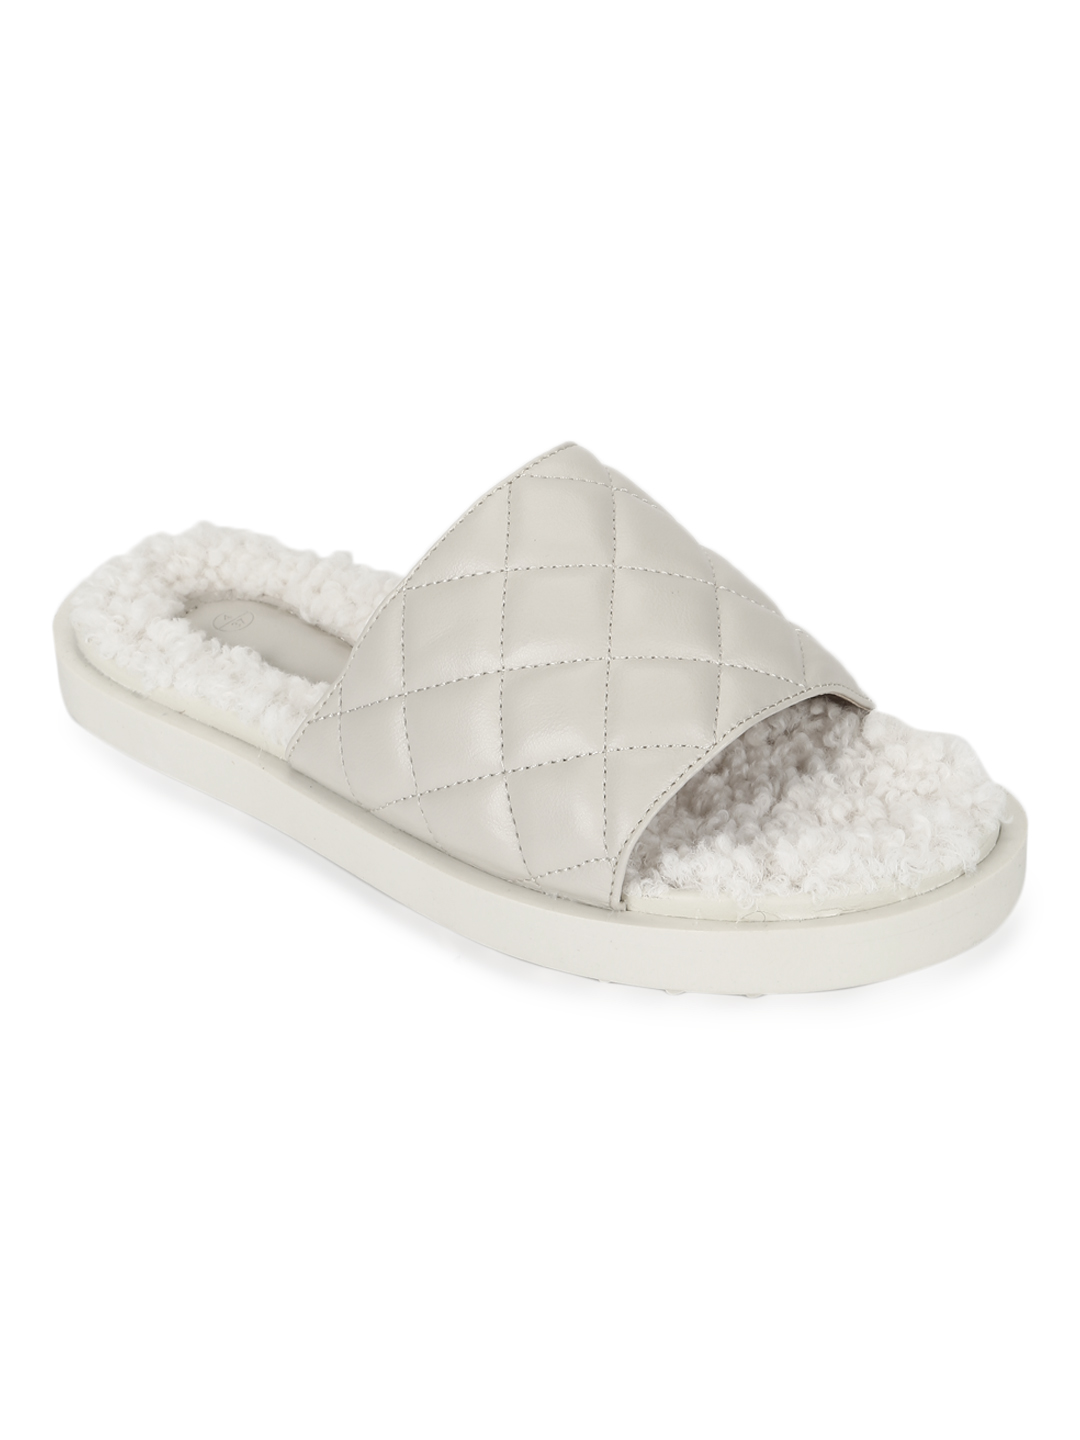 Truffle Collection   Truffle Collection White PU Faux Fur Quilted Slip Ons